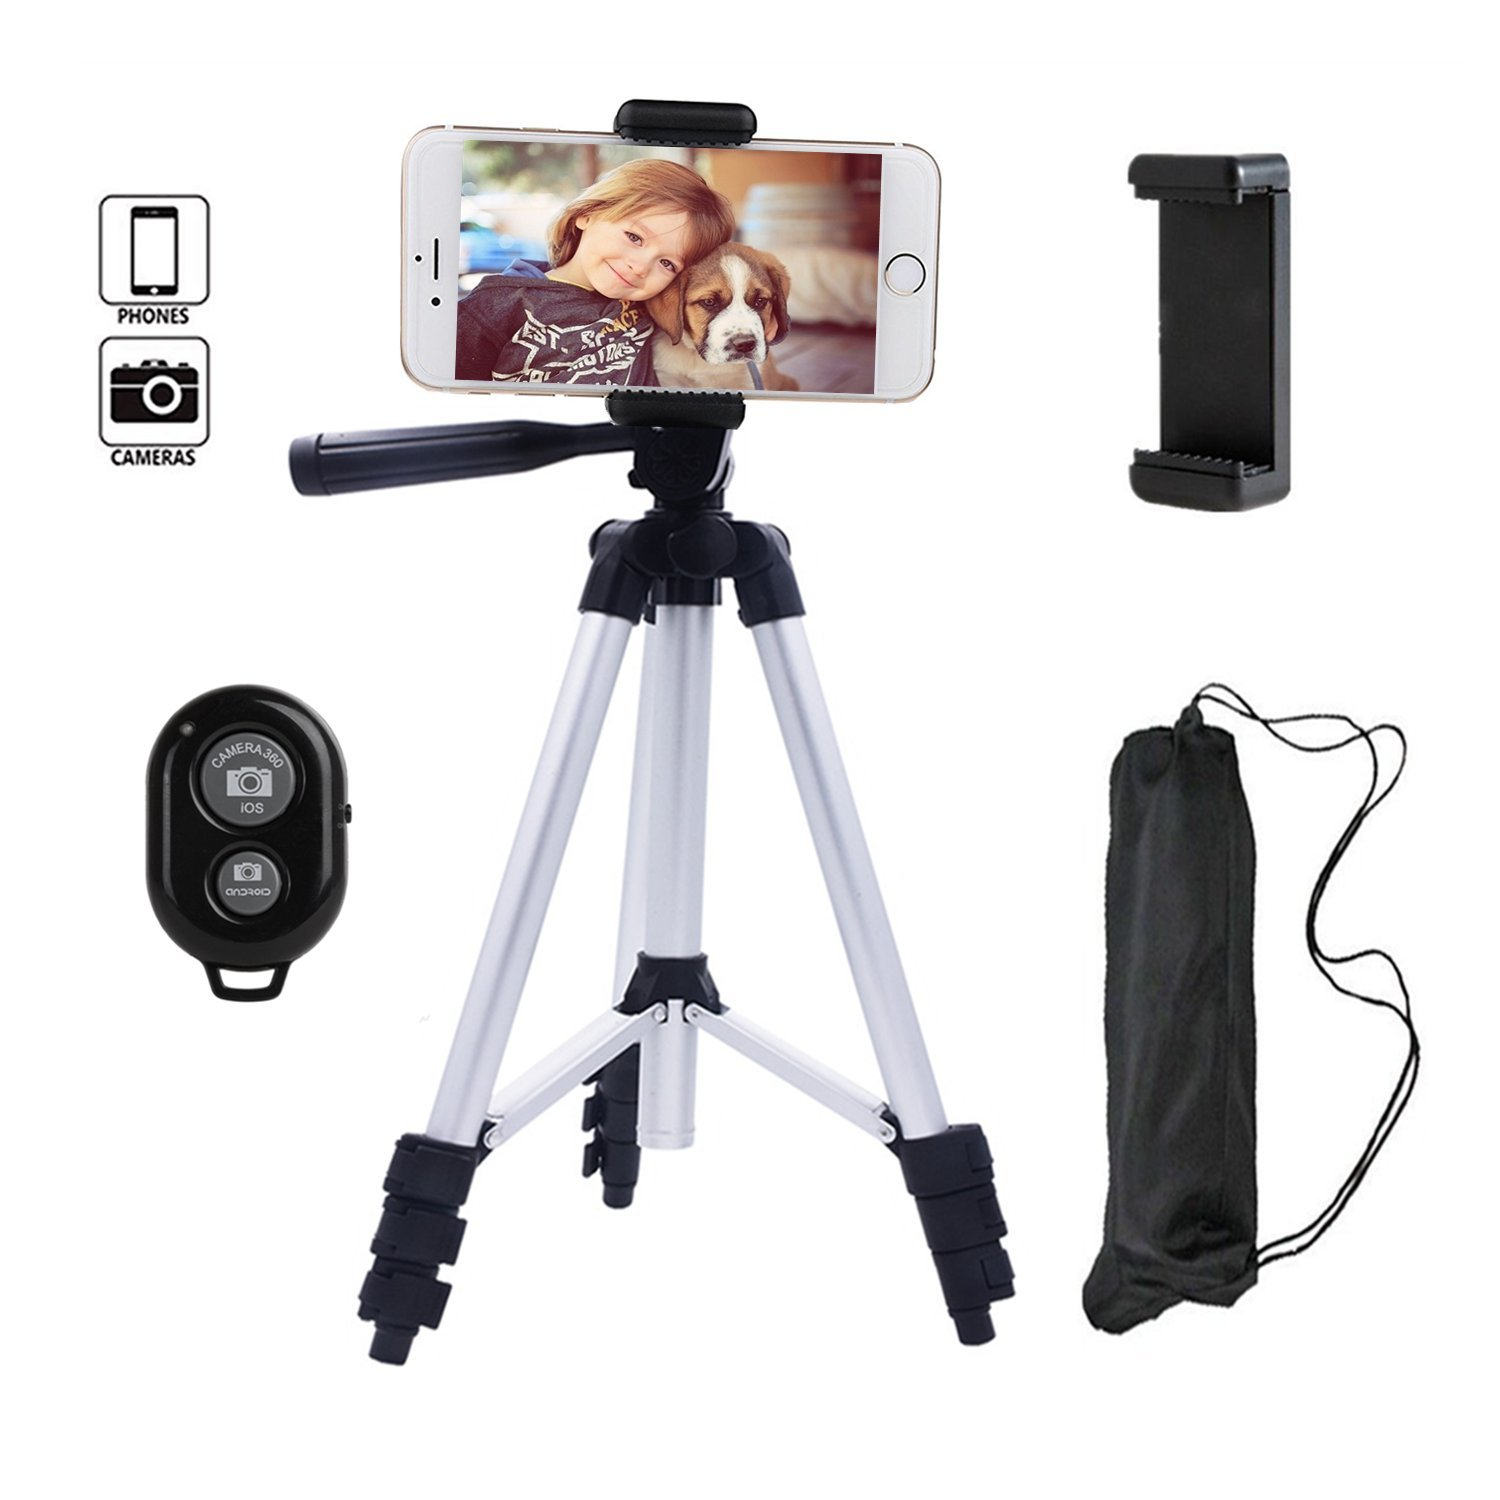 Behomy 42 Inch Aluminum Smart Phone Camera Tripod ,Phone Tripod with Phone Holder and Bluetooth Shutter Control Remote,Tripod for iPhone,Android Smart phone and Camera with Storage Bag (Silver)